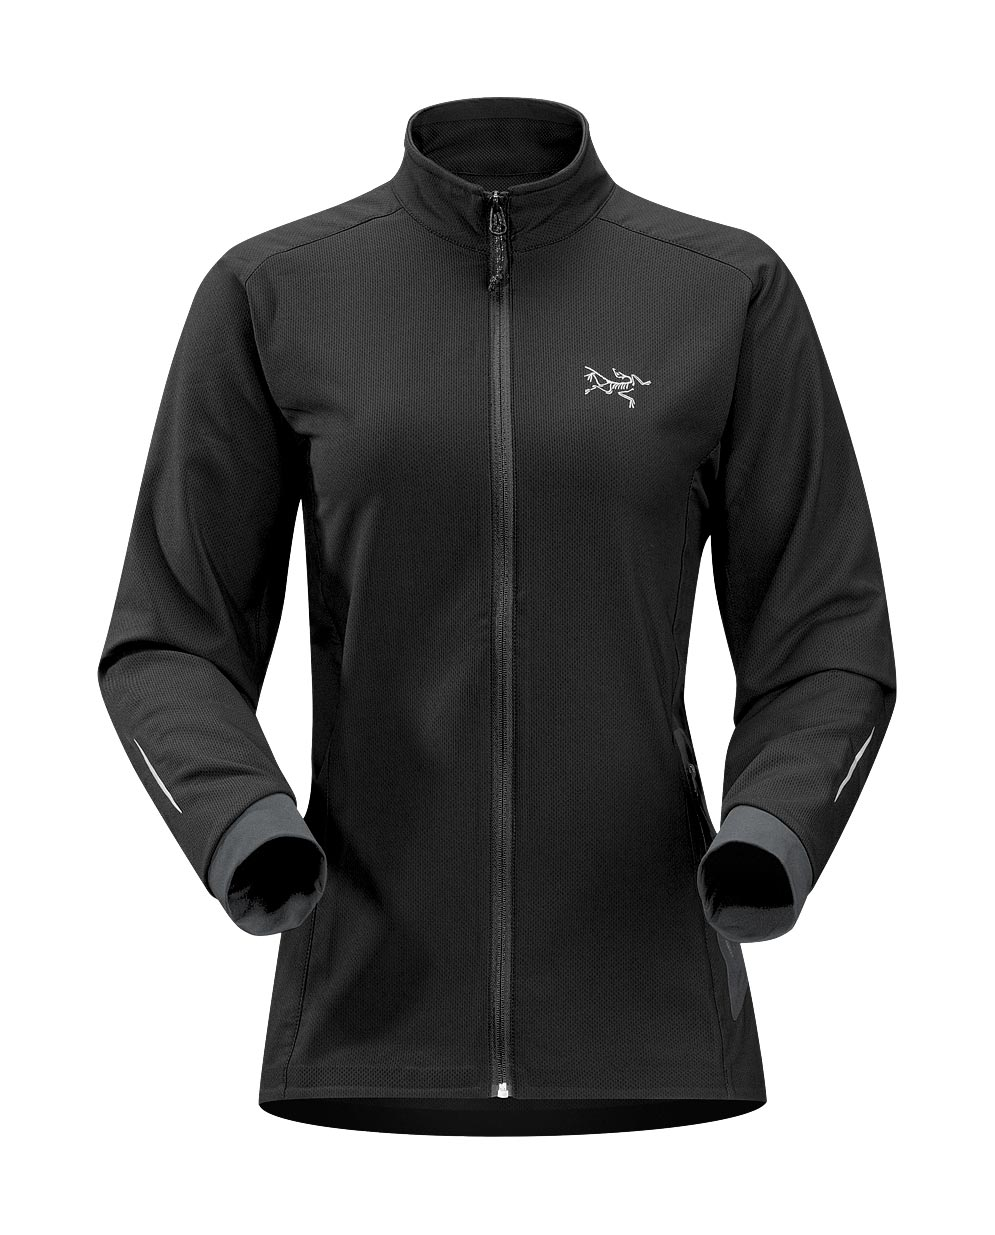 Arcteryx Jackets Women Black Accelero Jacket